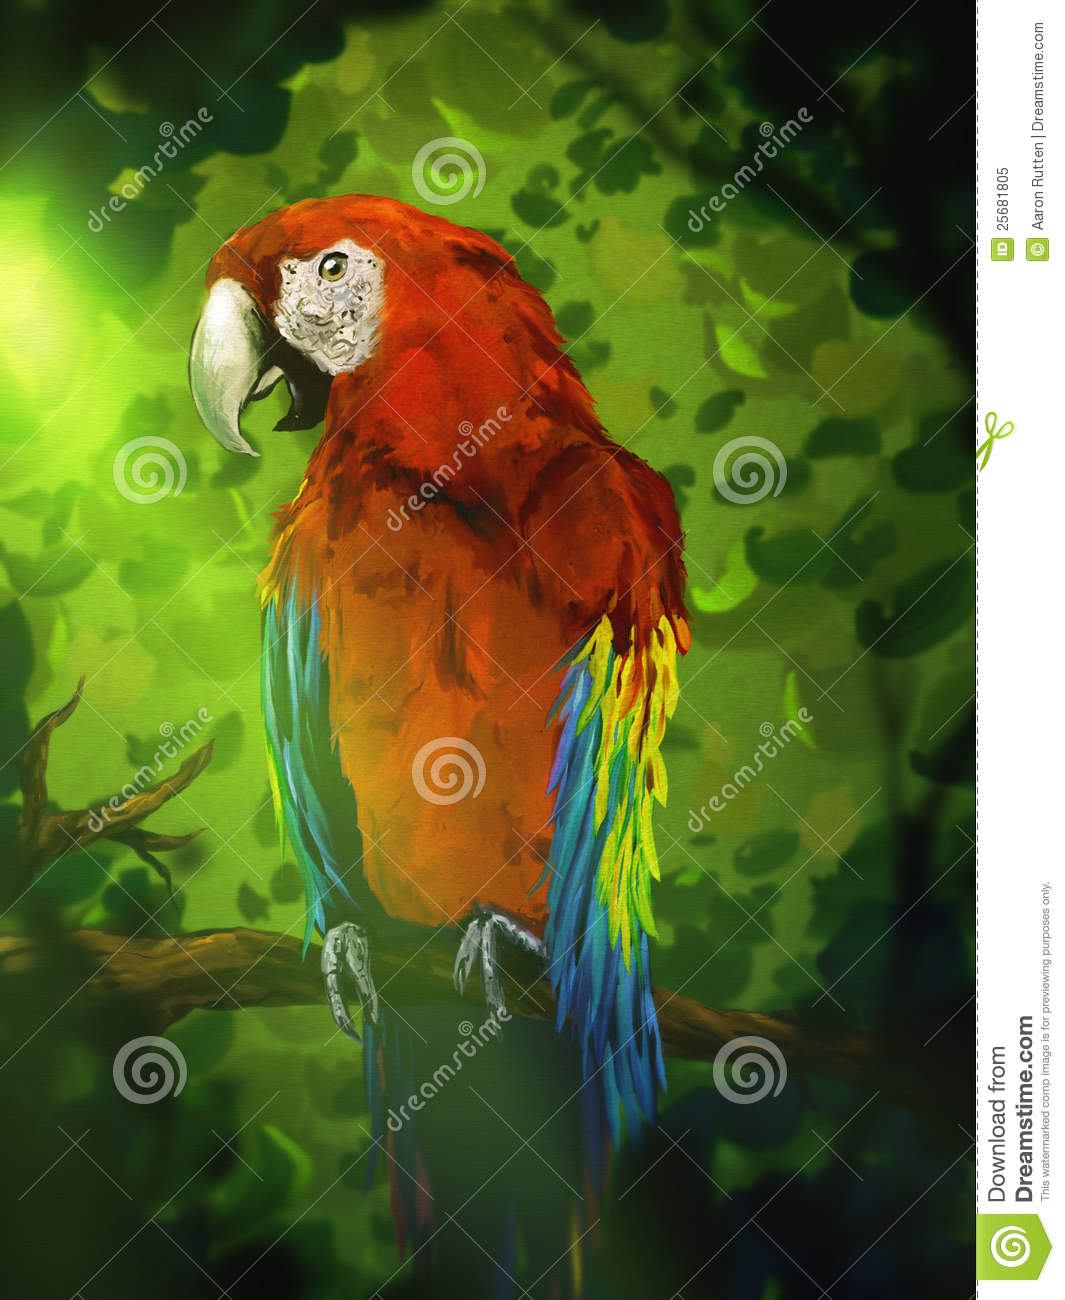 Colorful Macaw Parrot Digital Painting Royalty Free